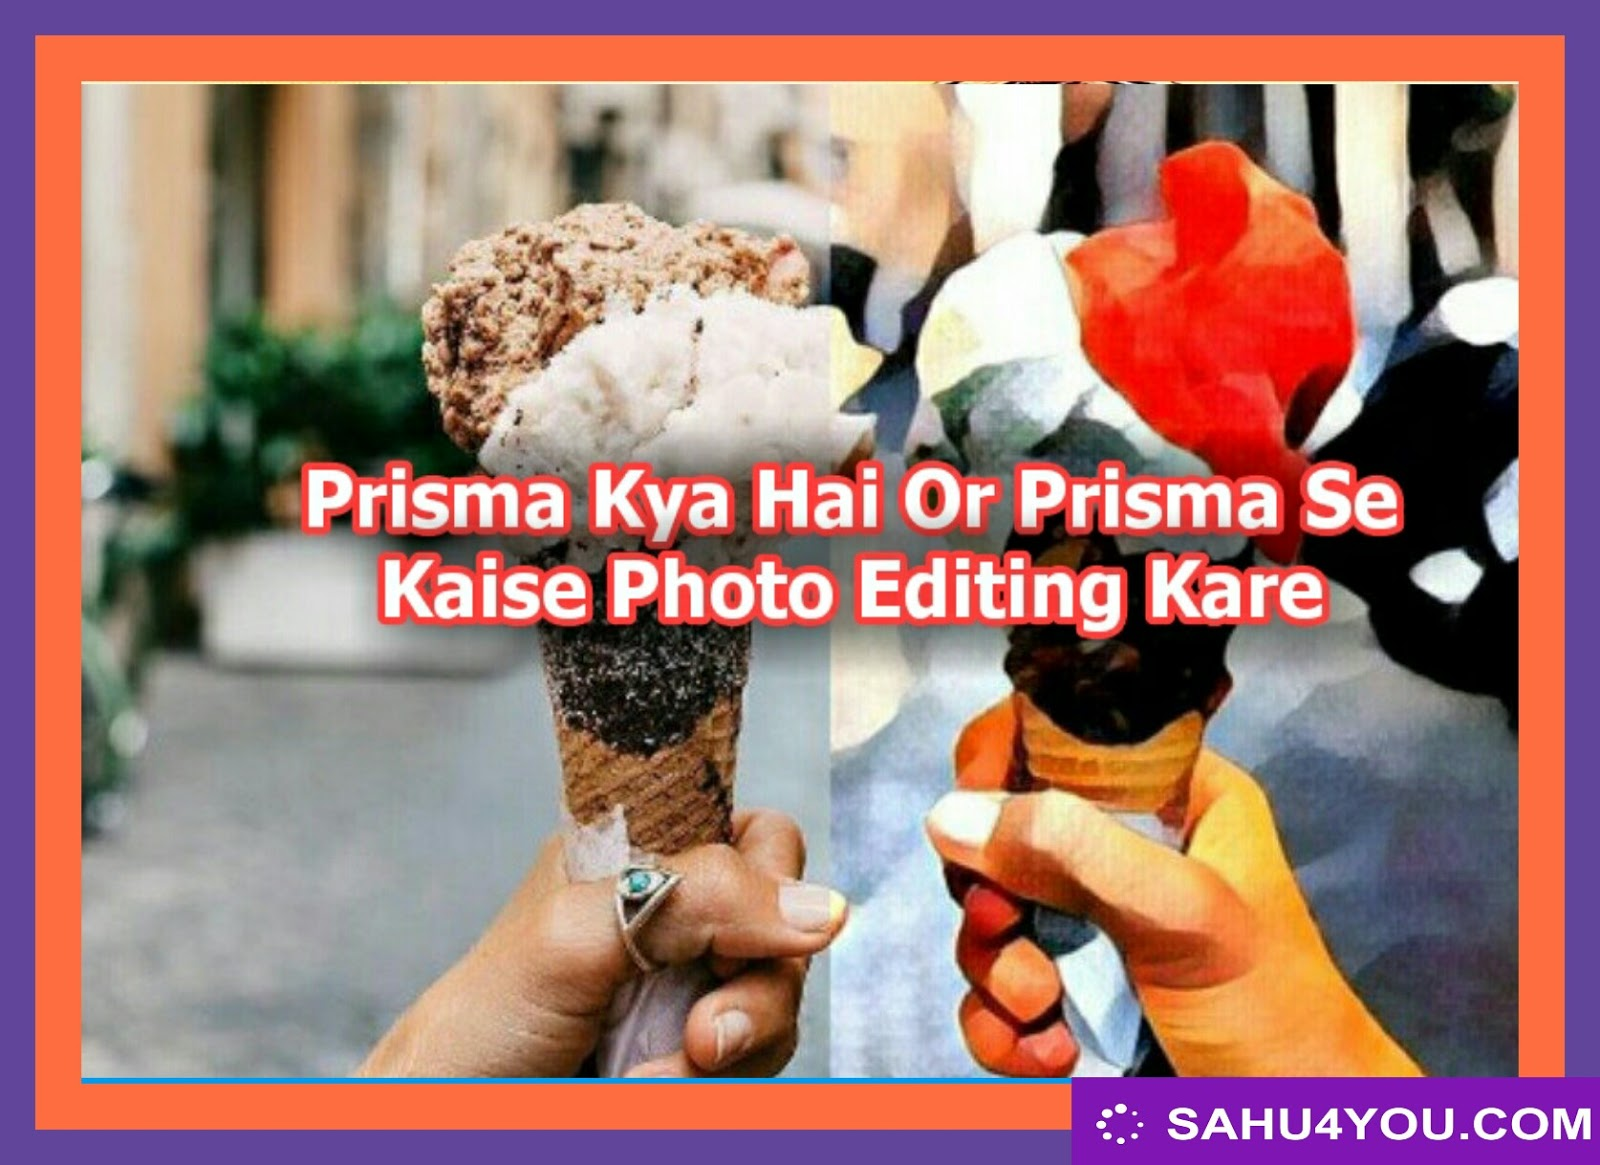 Prisma App Kya Hai Or Prisma App Se Photo Editing Kaise Kare